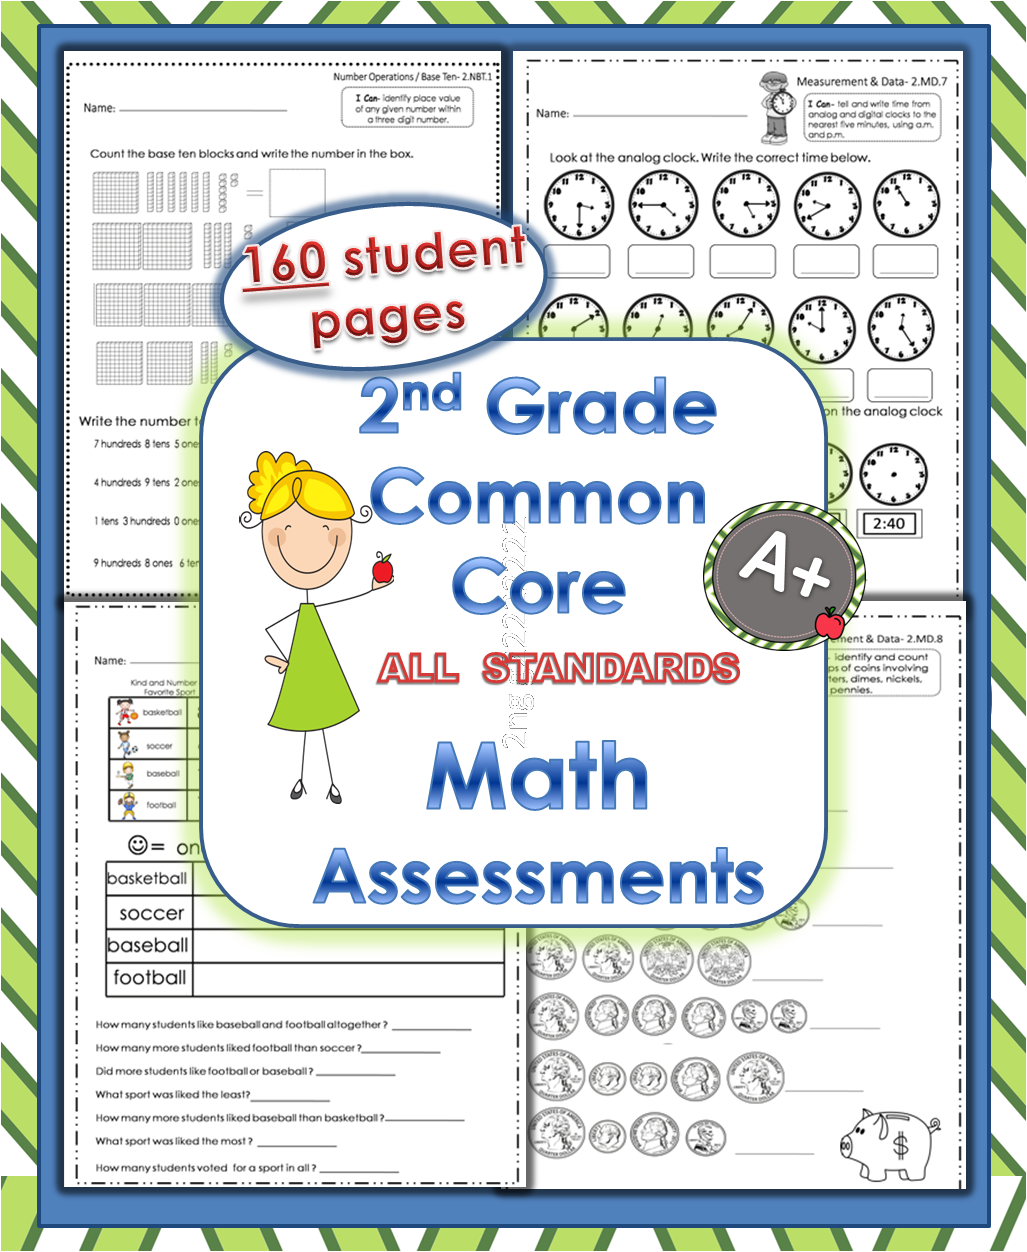 Common Core Math Worksheets For 2nd Grade : Common core math second grade examples st